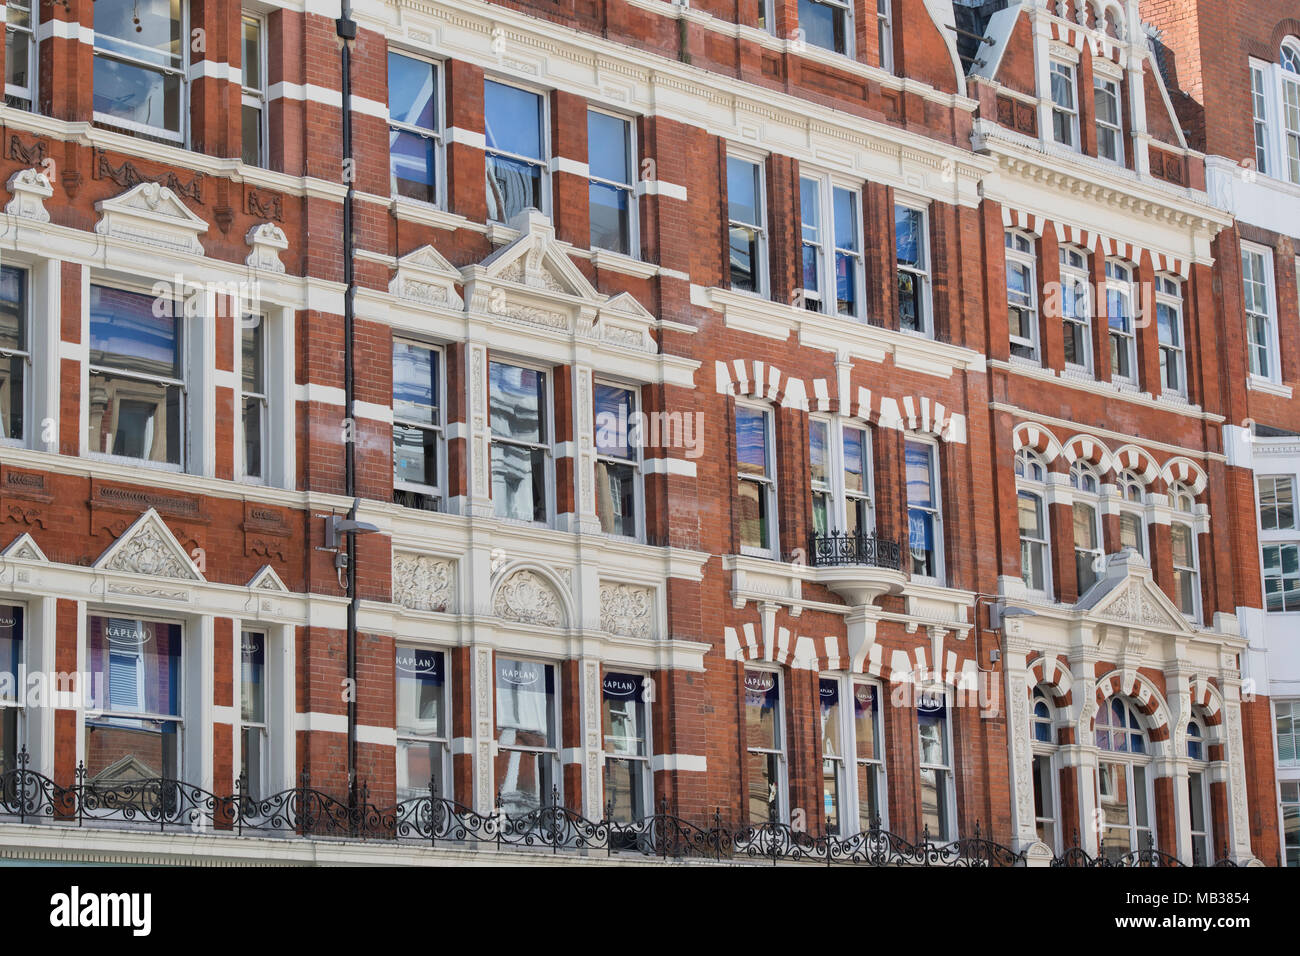 Building architecture detail. Irving street, London, England - Stock Image